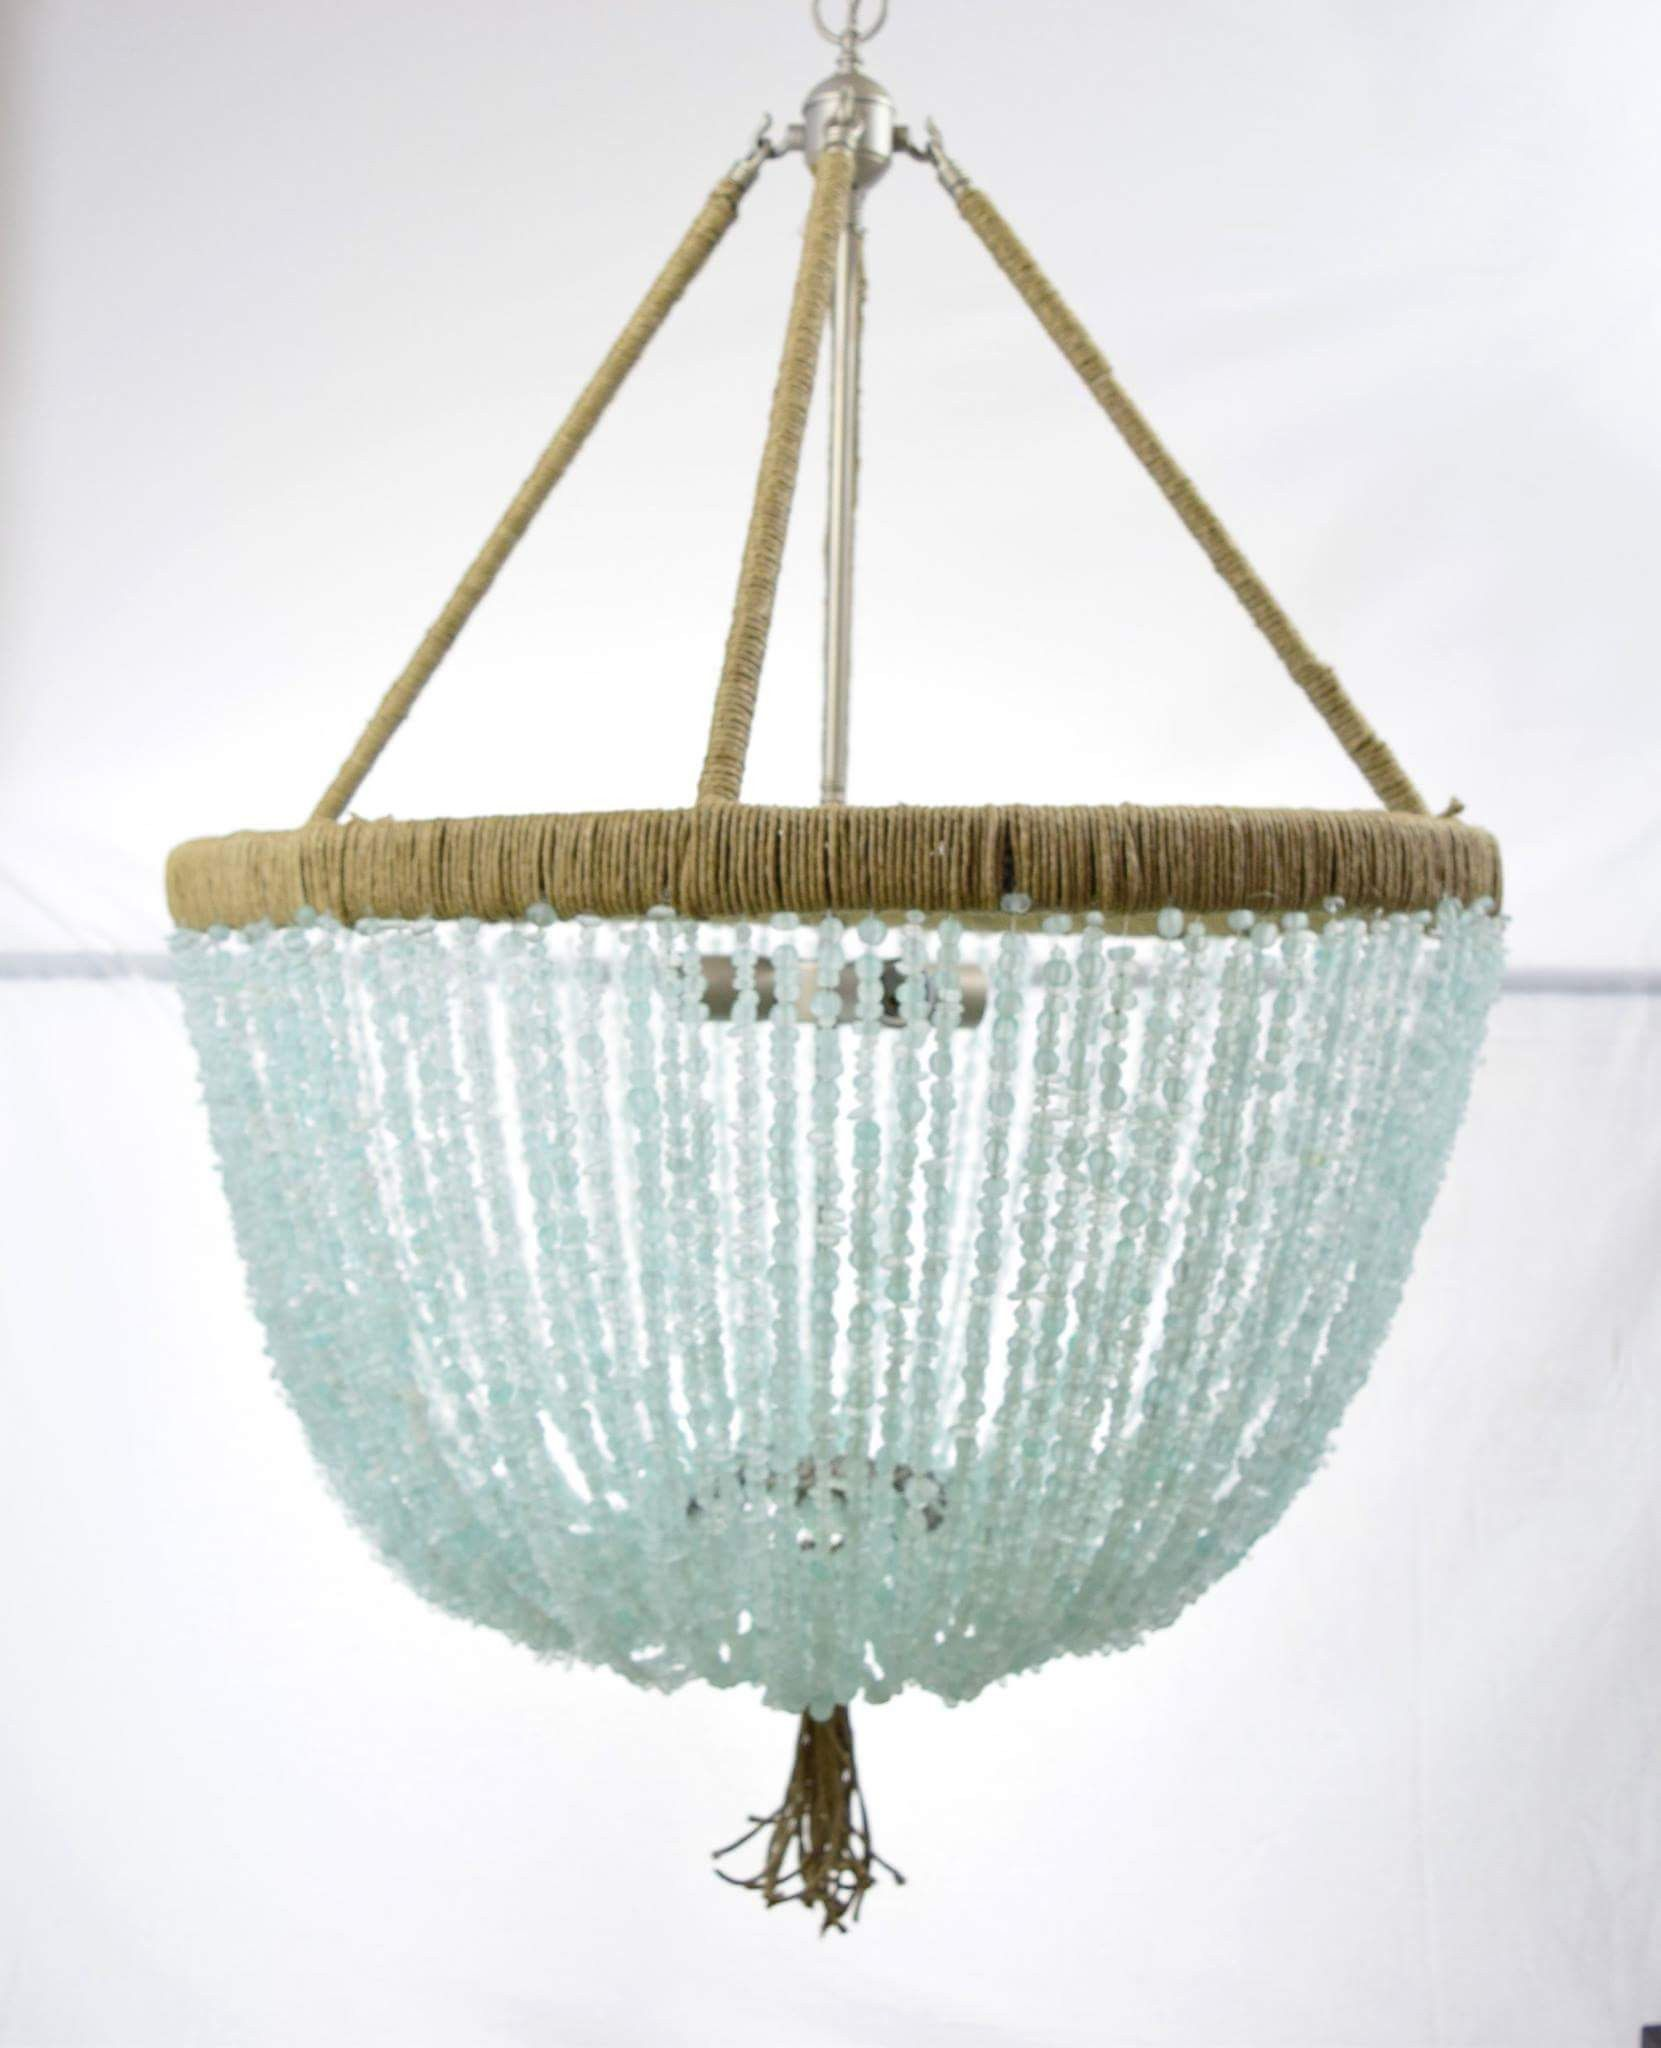 Francois 2 Light Sea Gl Open Chandelier Designed In The French Empire Style With A Contemporary Twist Using Cultured Beads